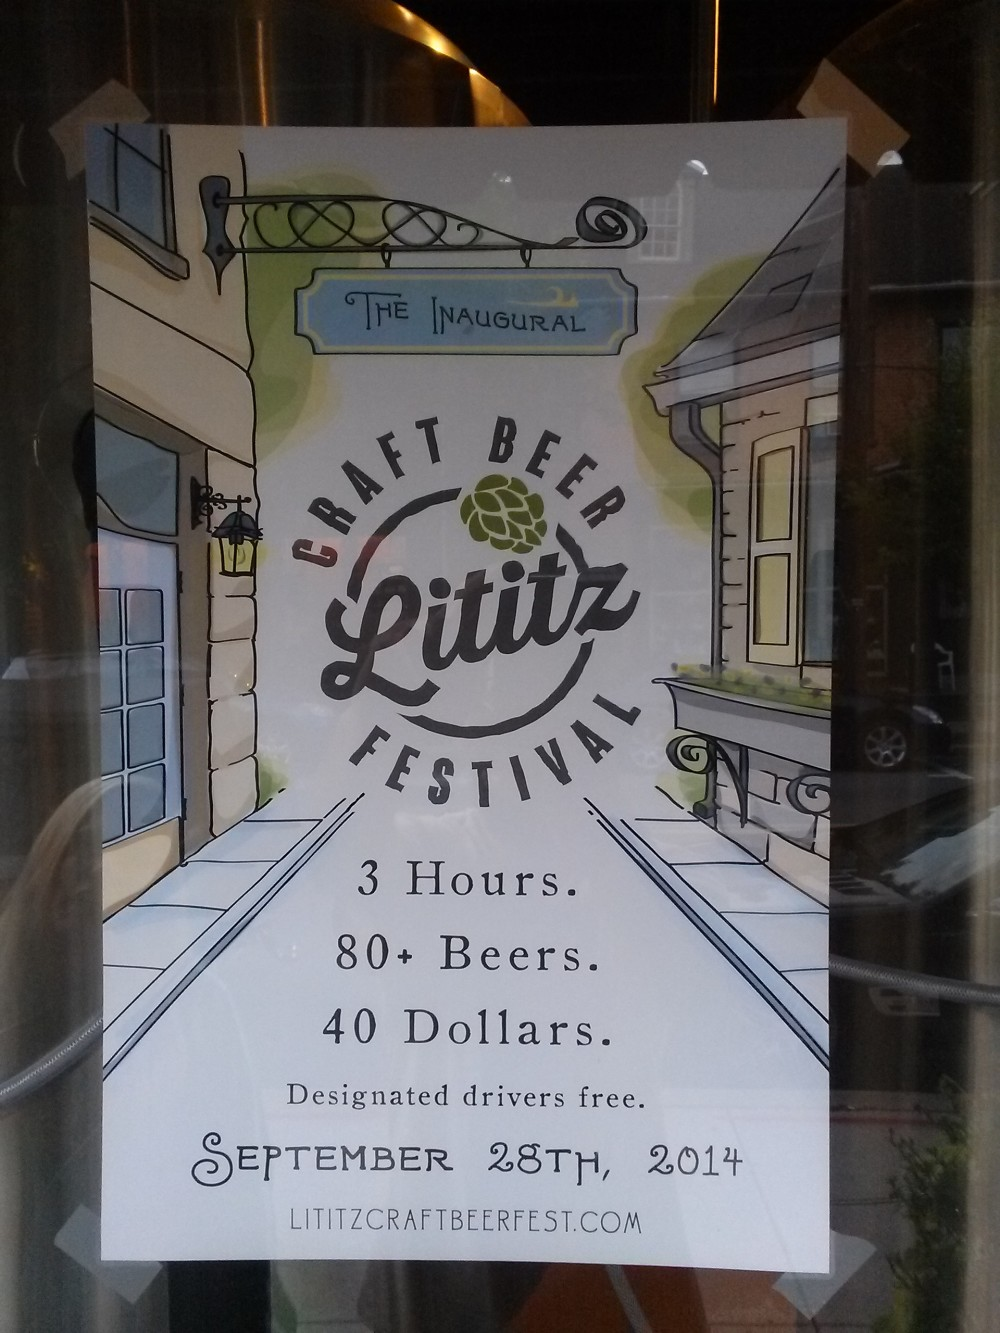 Lititz Craft Beer Fest